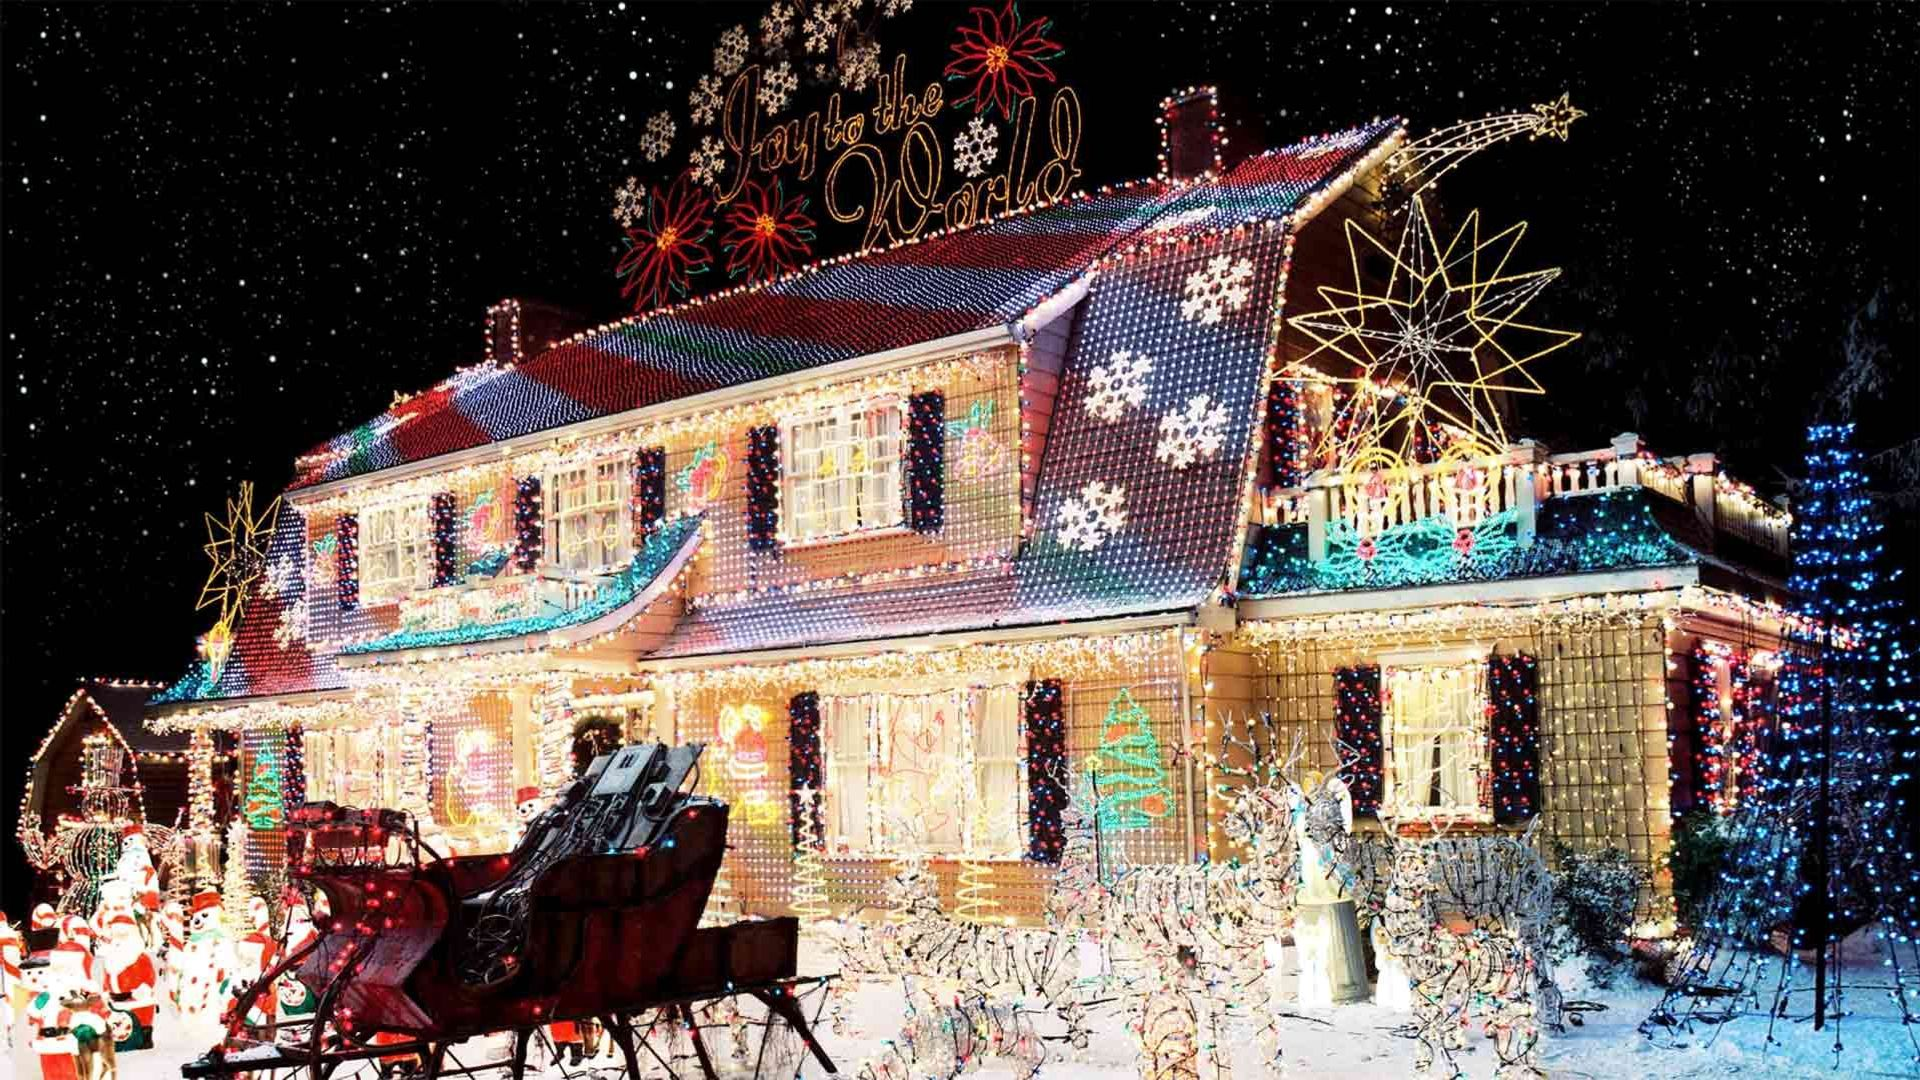 2020-12-01-tuesdays-must-stream-movies-3-for-the-christmas-lights-story-image-2.jpg